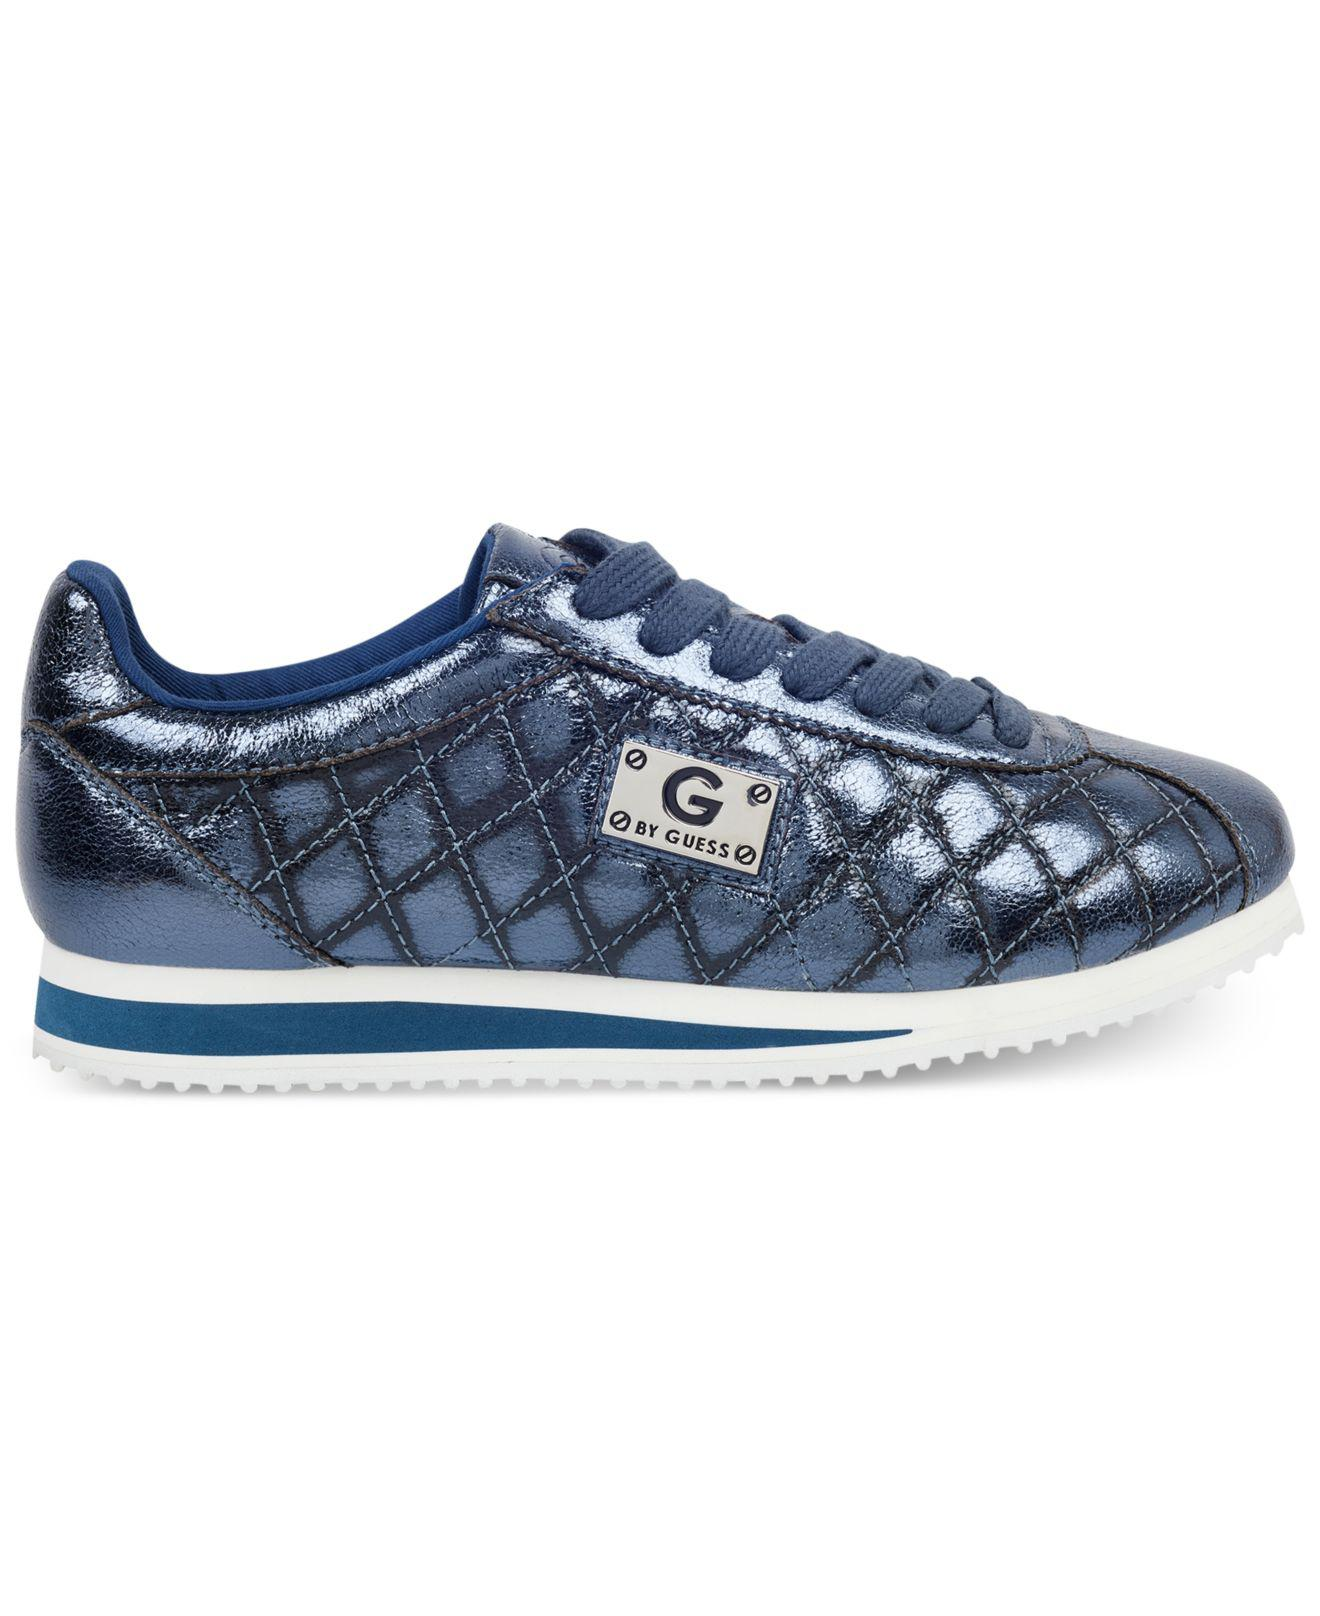 G by Guess Romio Lace Up Sneakers in